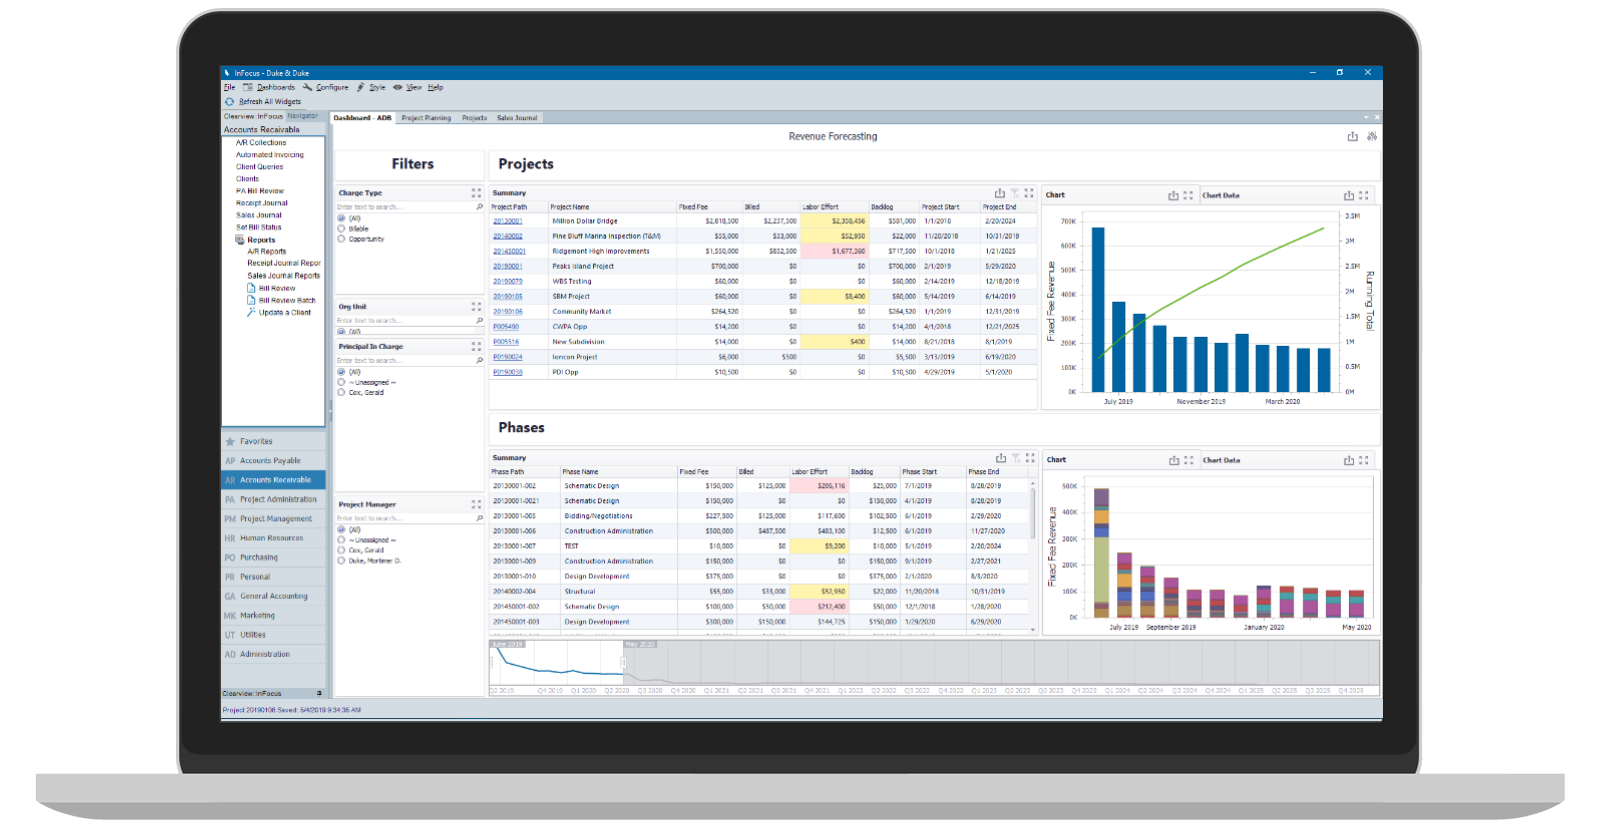 InFocus Analytic Dashboards